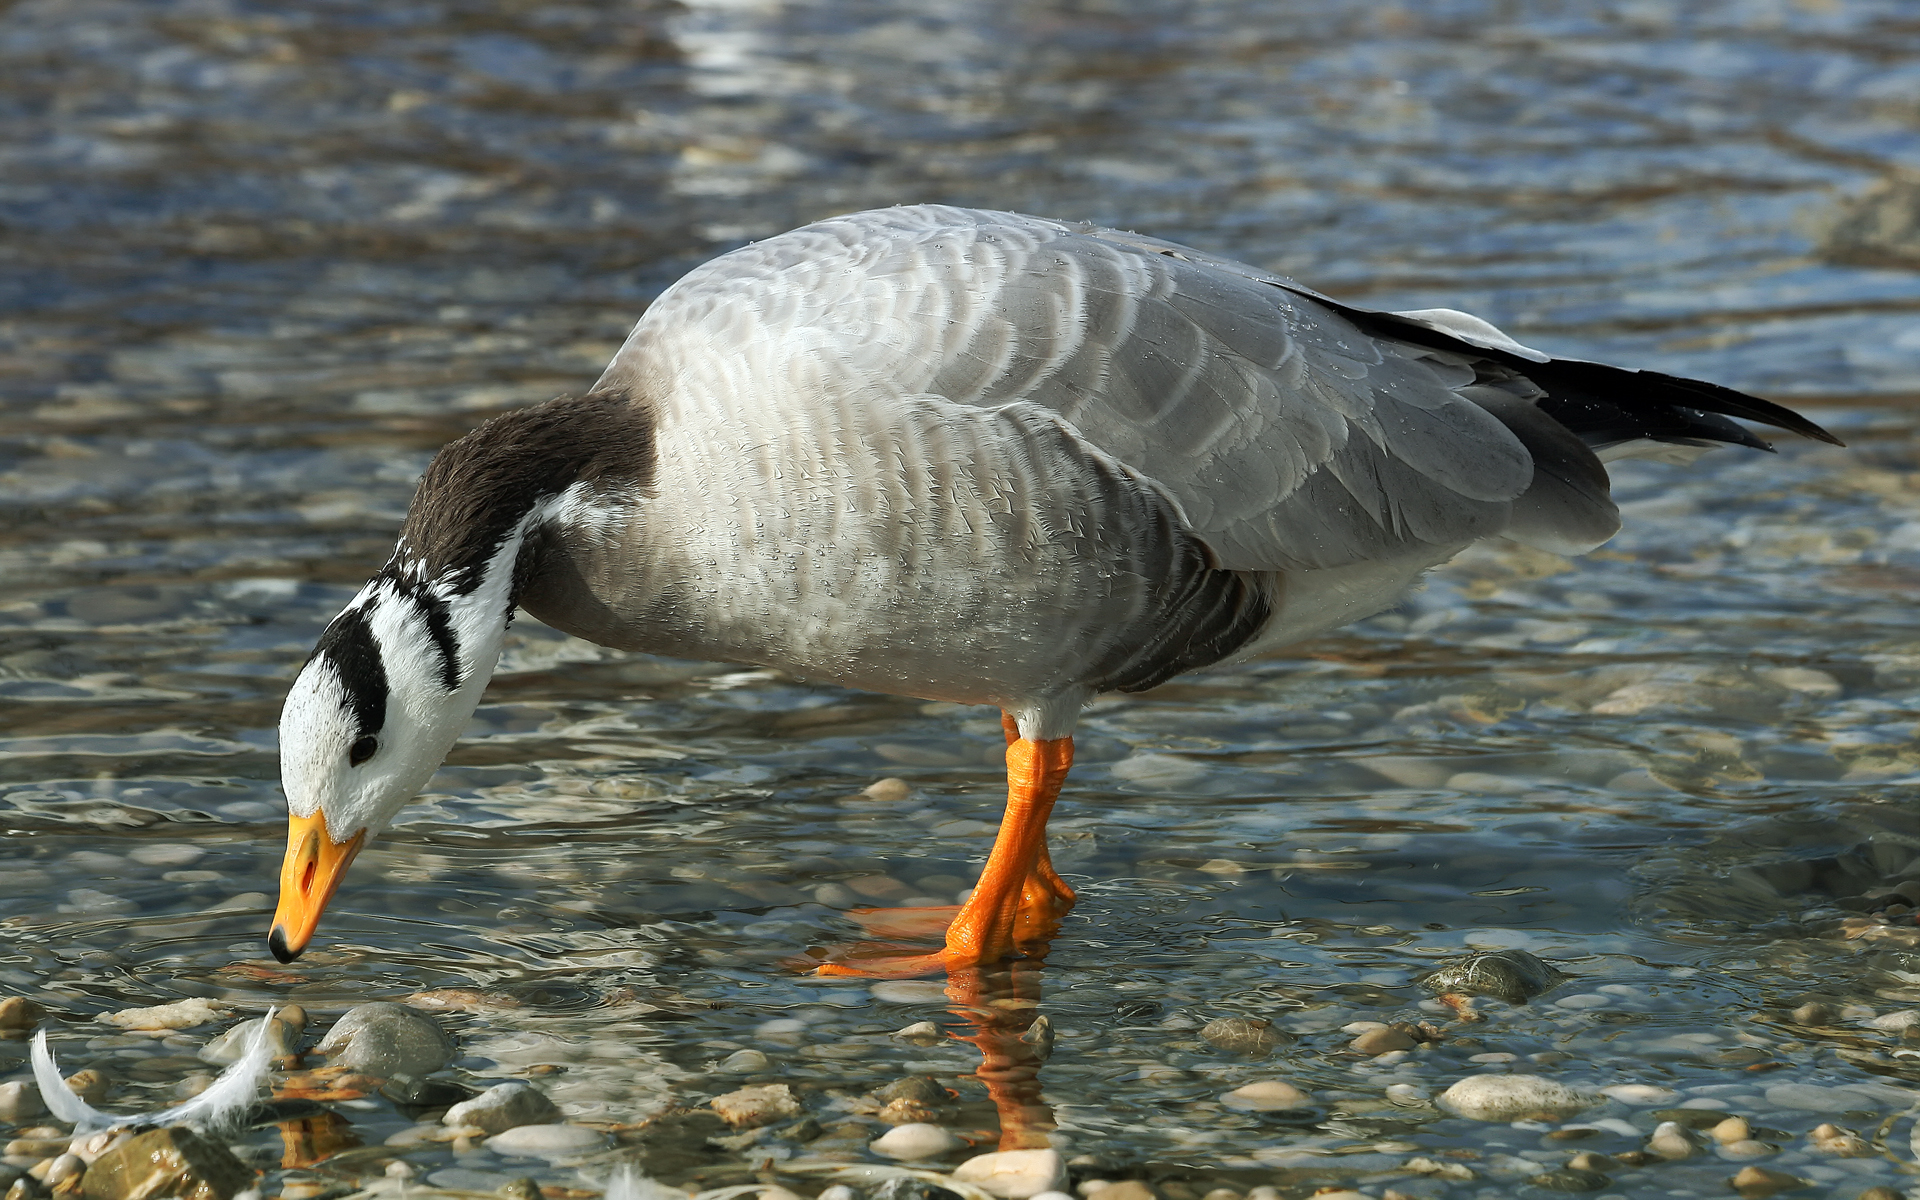 Tso Moriri is reputed to be the only breeding place for the bar-headed goose (Anser Indicus) in India. (Photo: Richard Bartz)